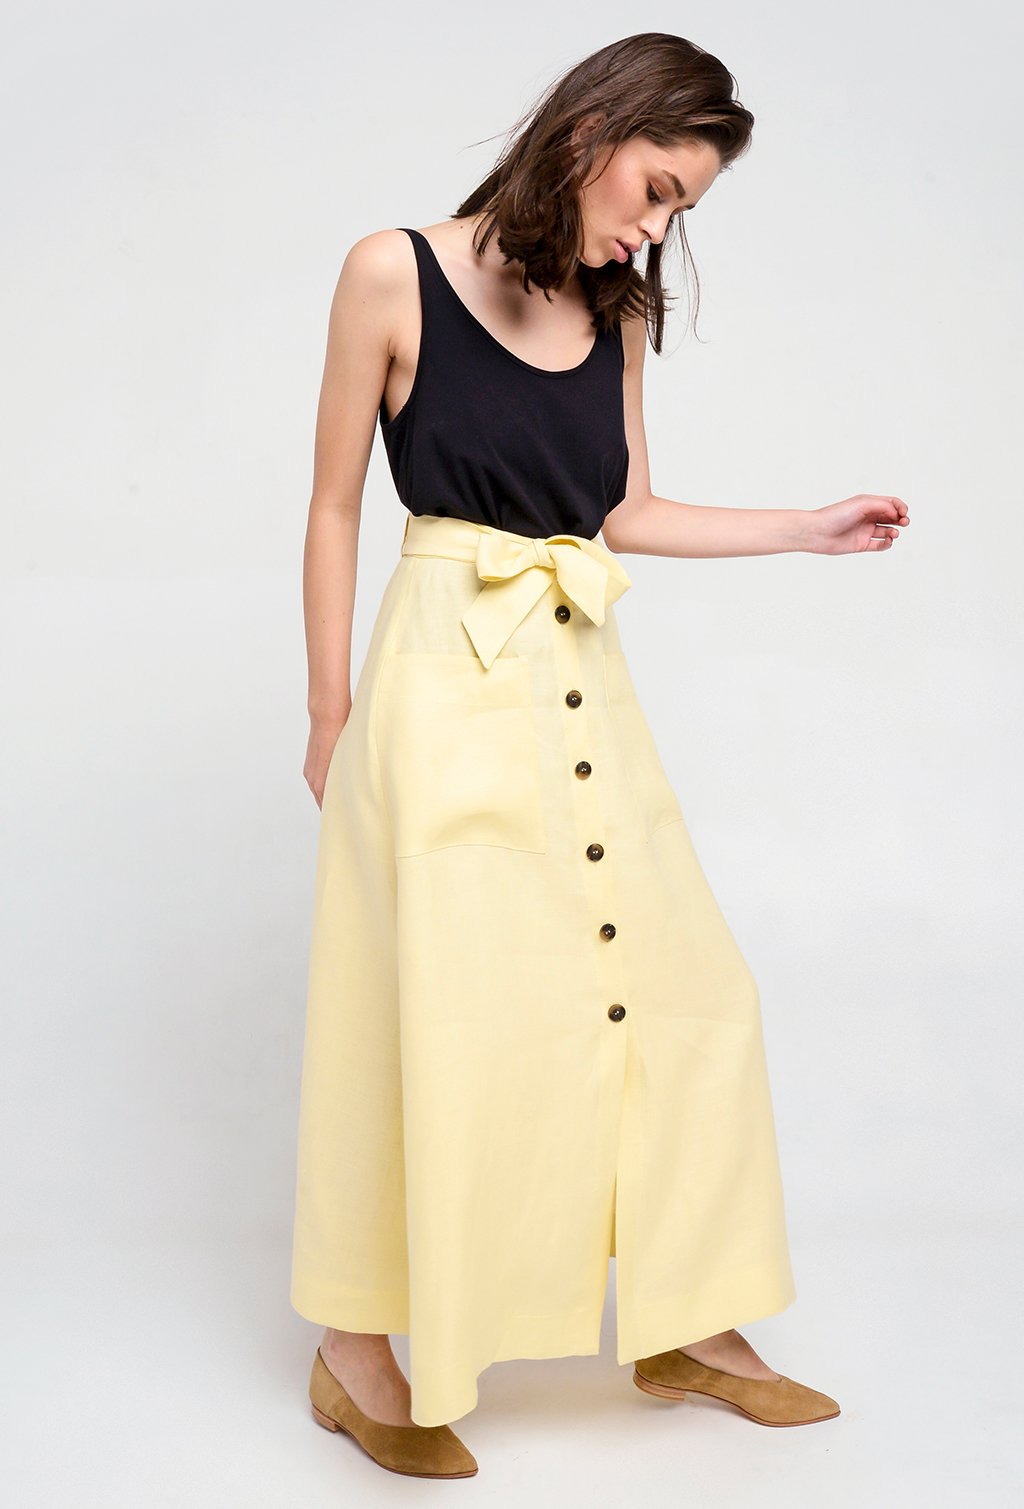 LOU LOU YELLOW LINEN SKIRT